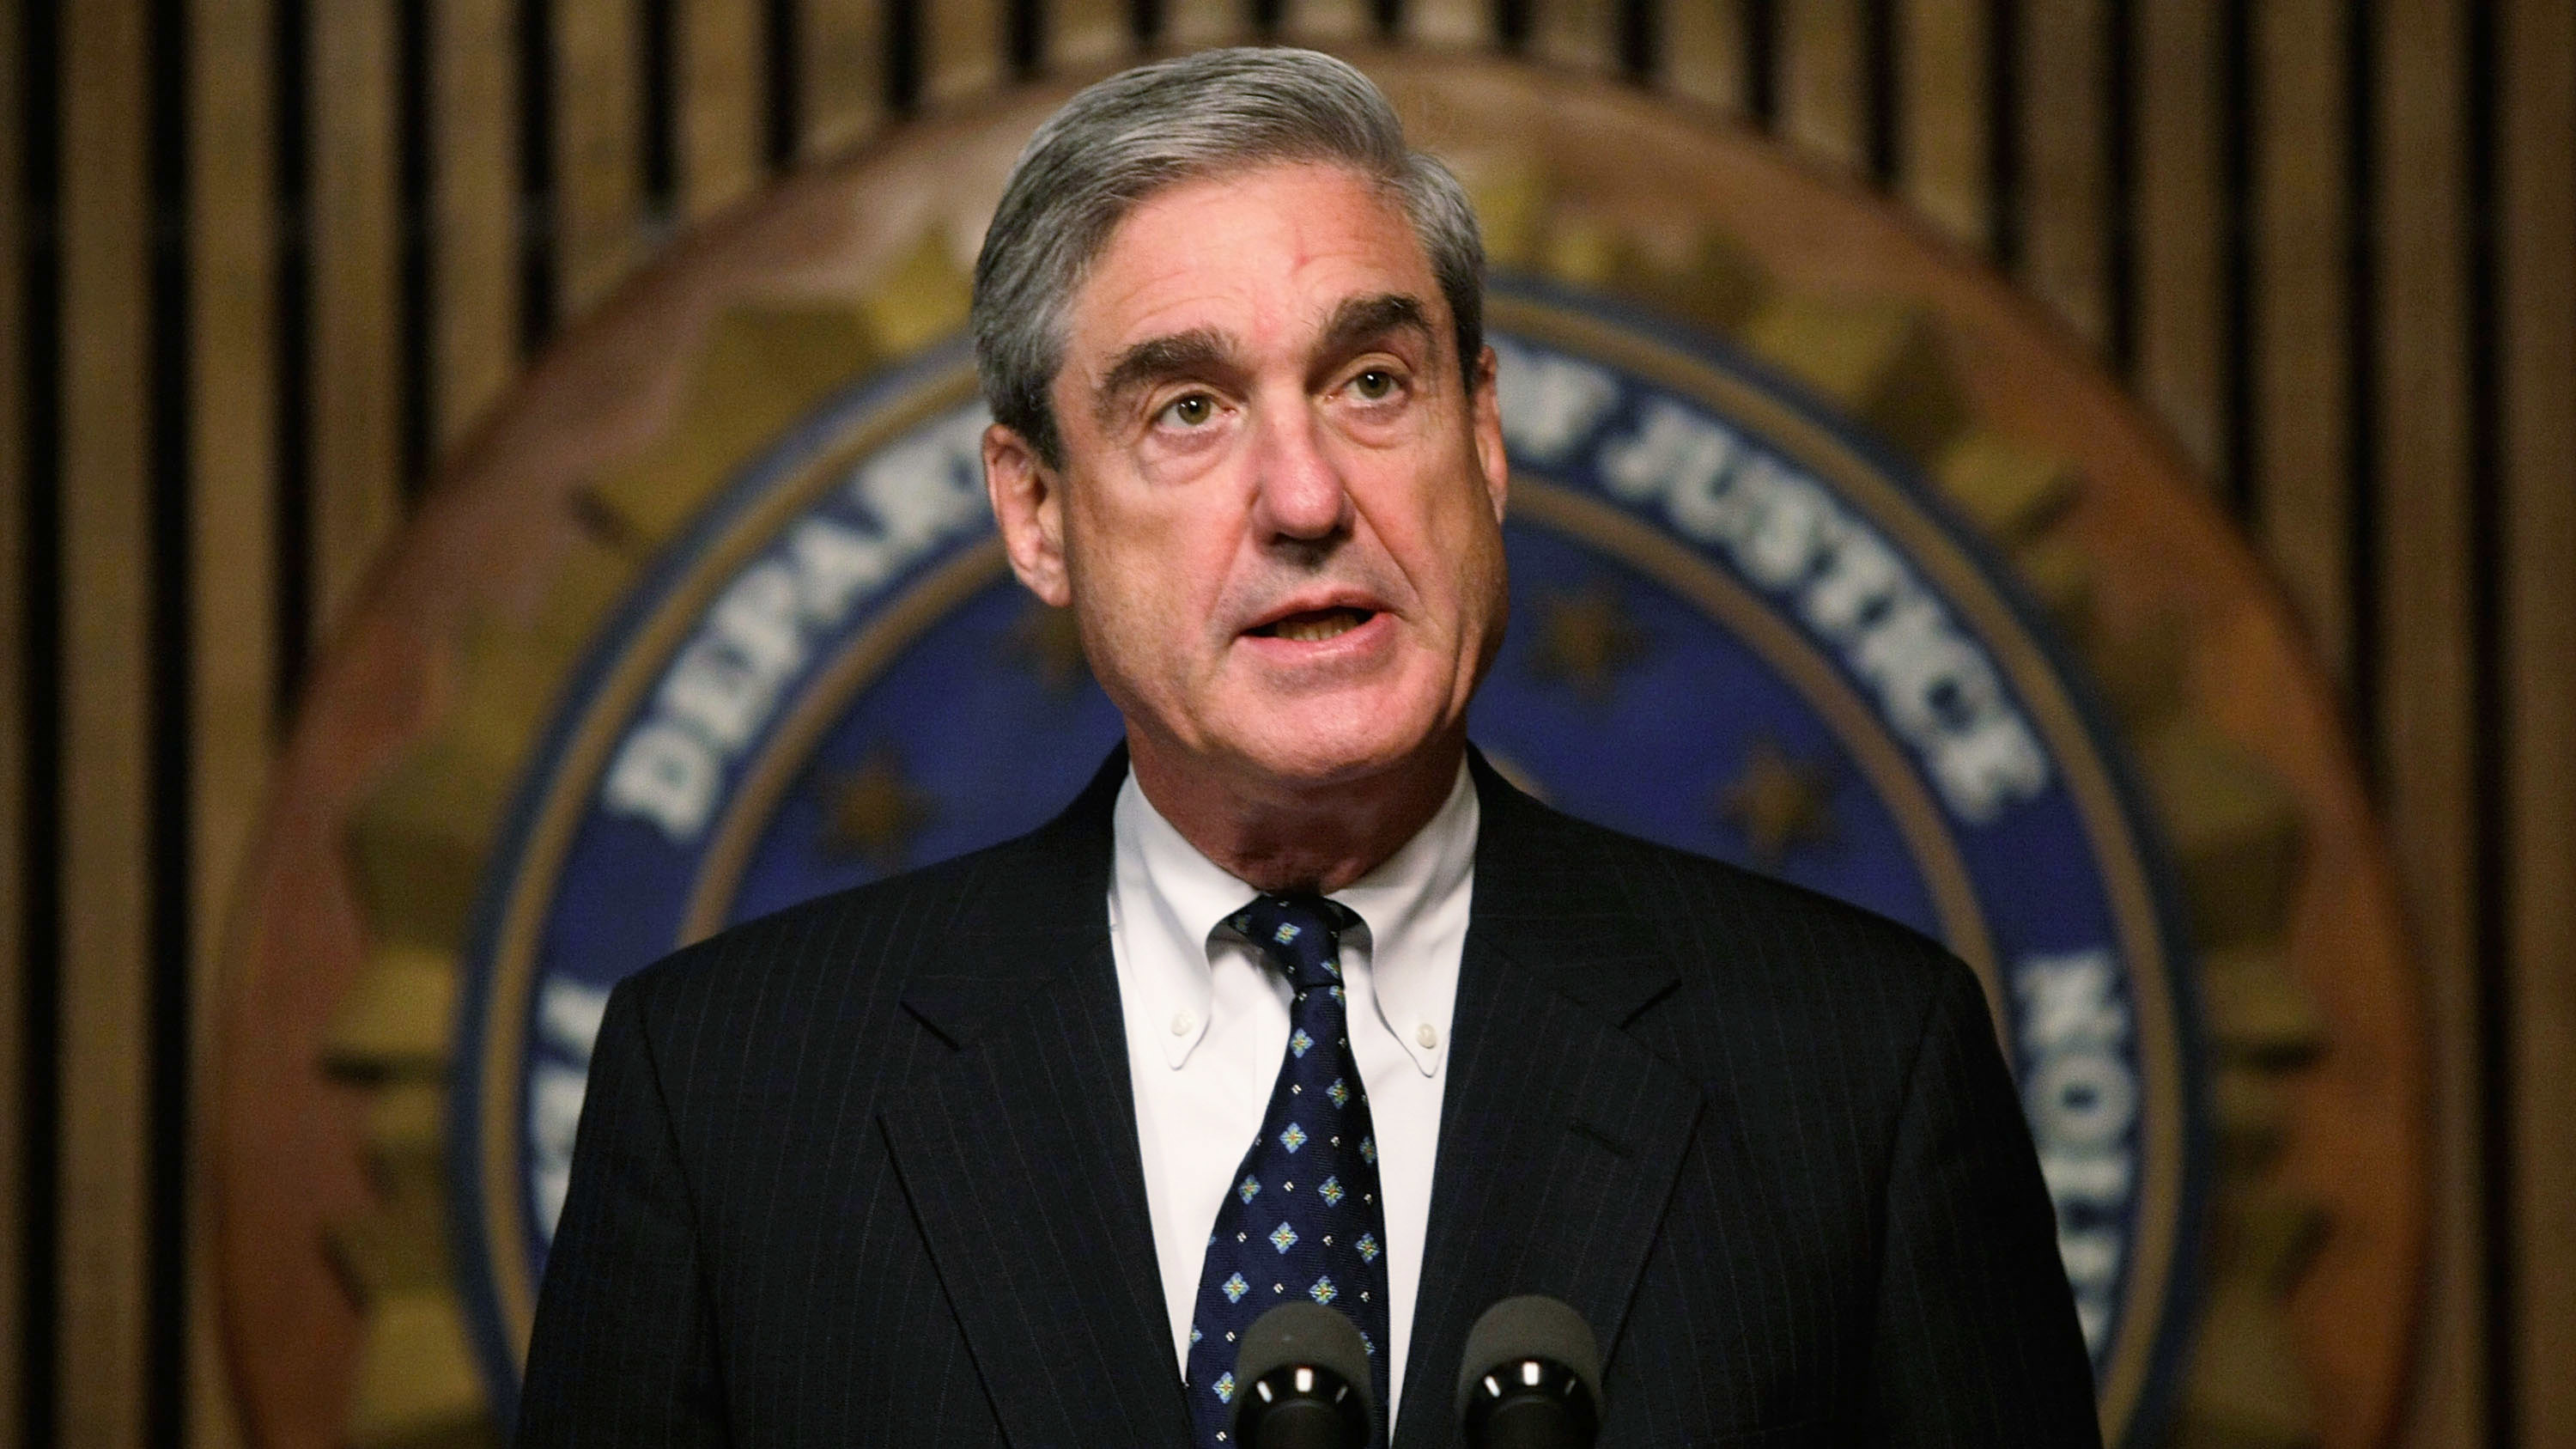 READ: The Mueller Report, With Redactions